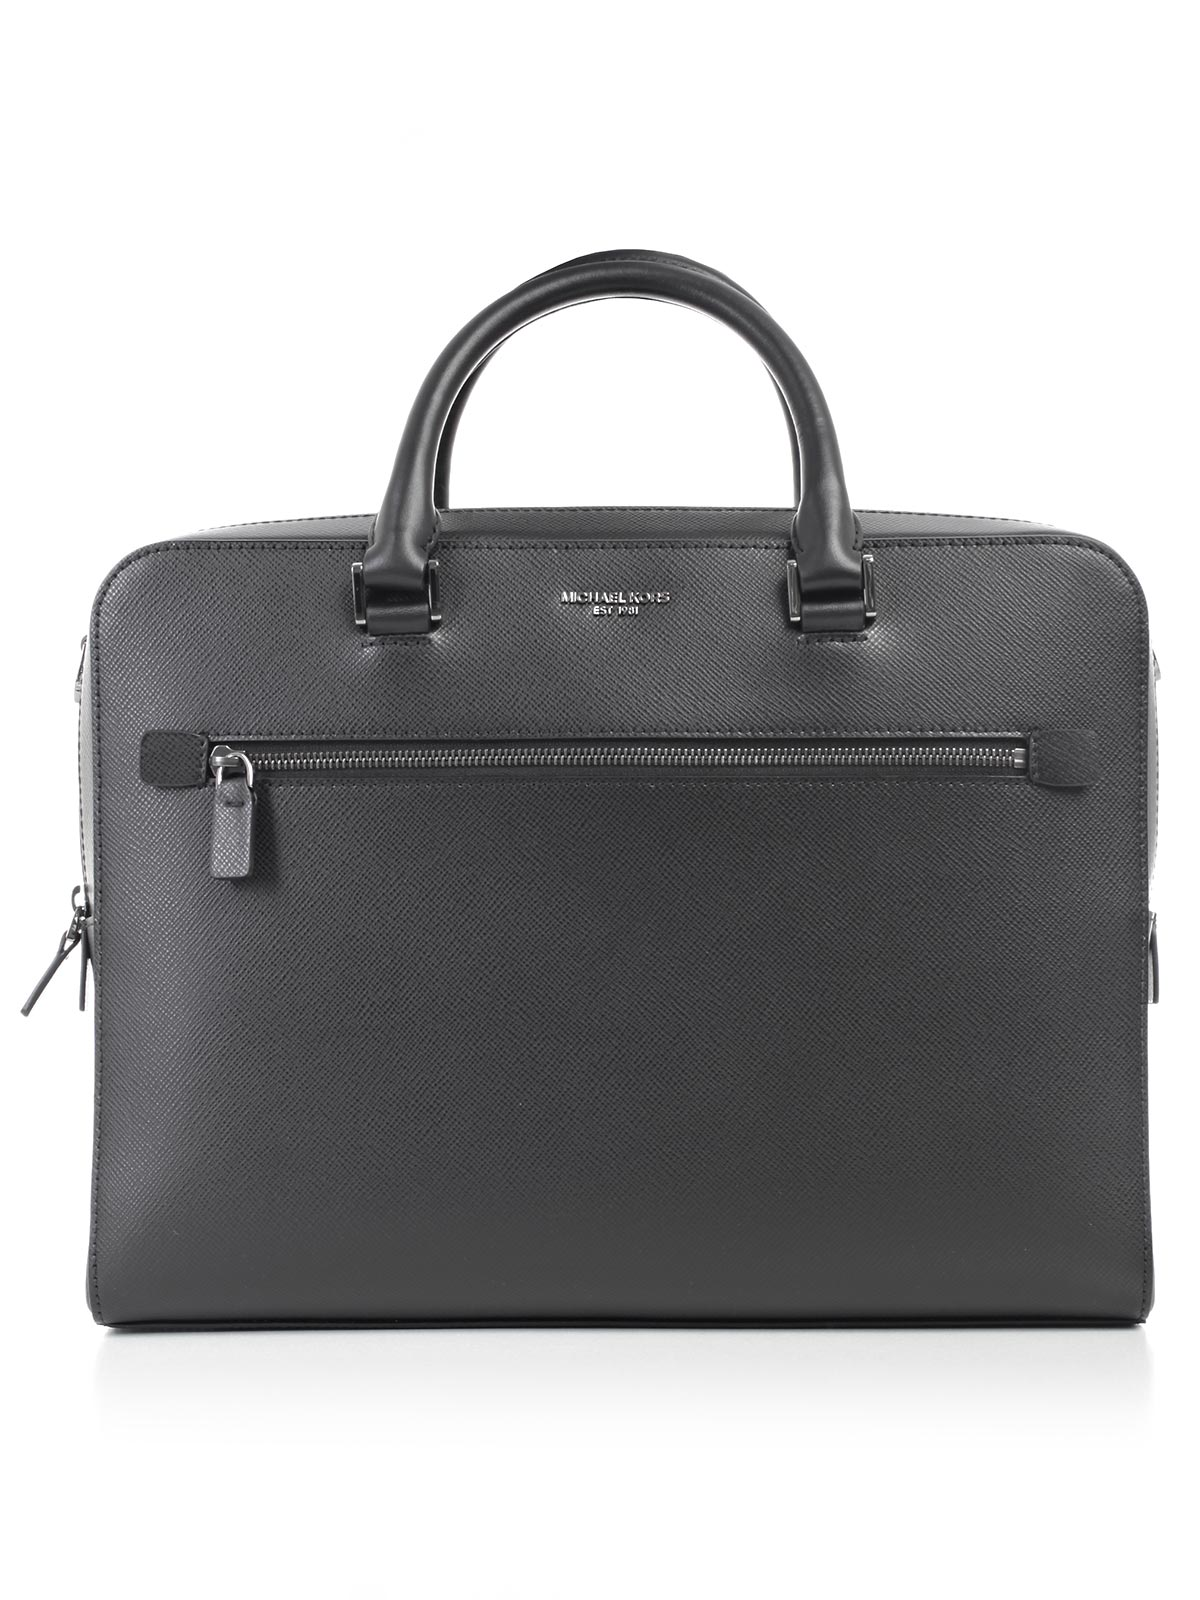 Picture of MICHEAL KORS  Totes